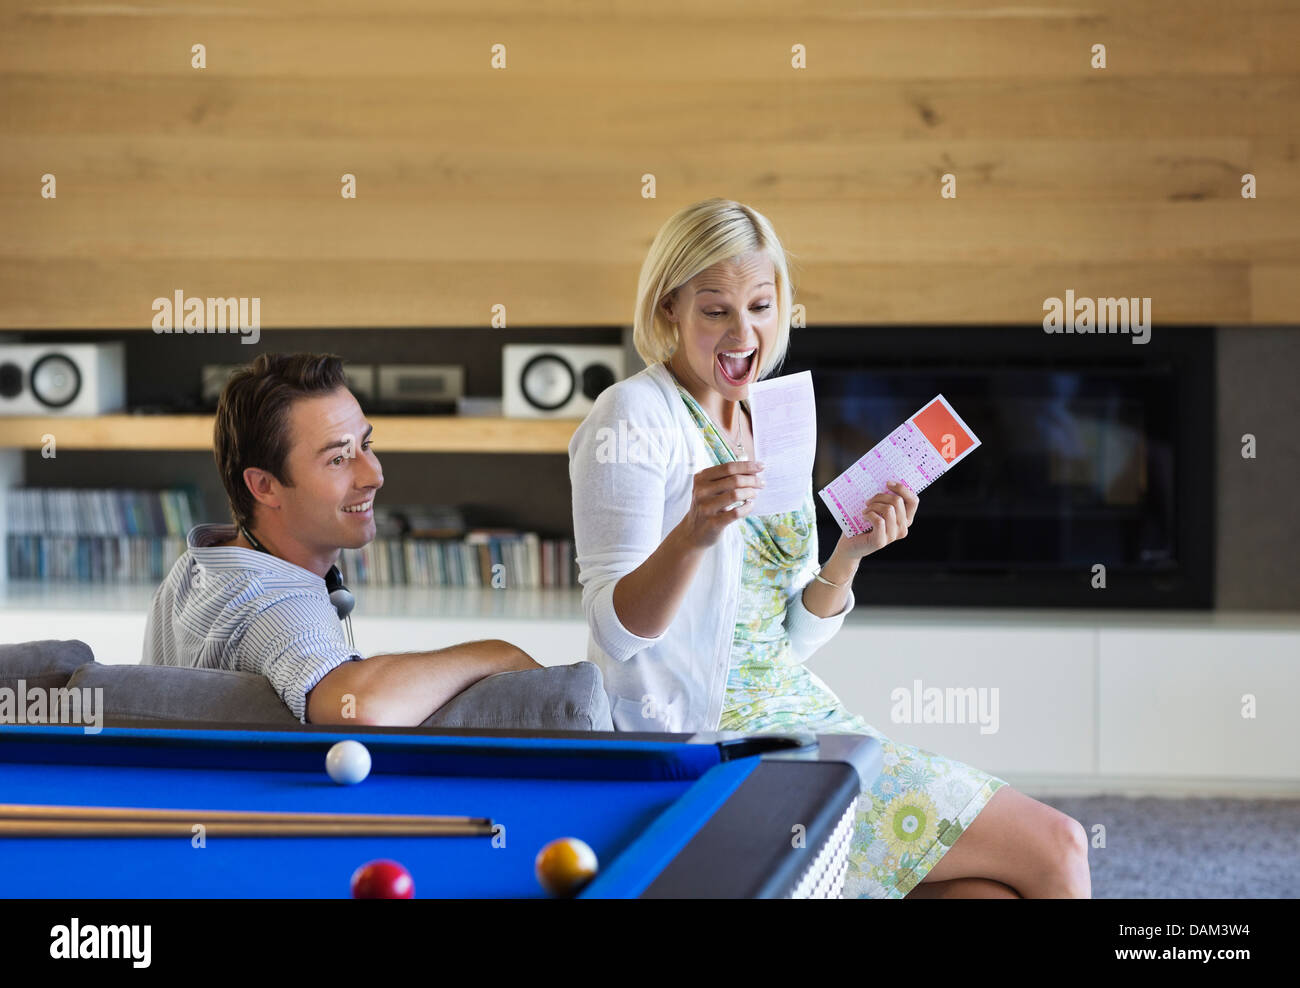 Couple checking lottery tickets on sofa - Stock Image